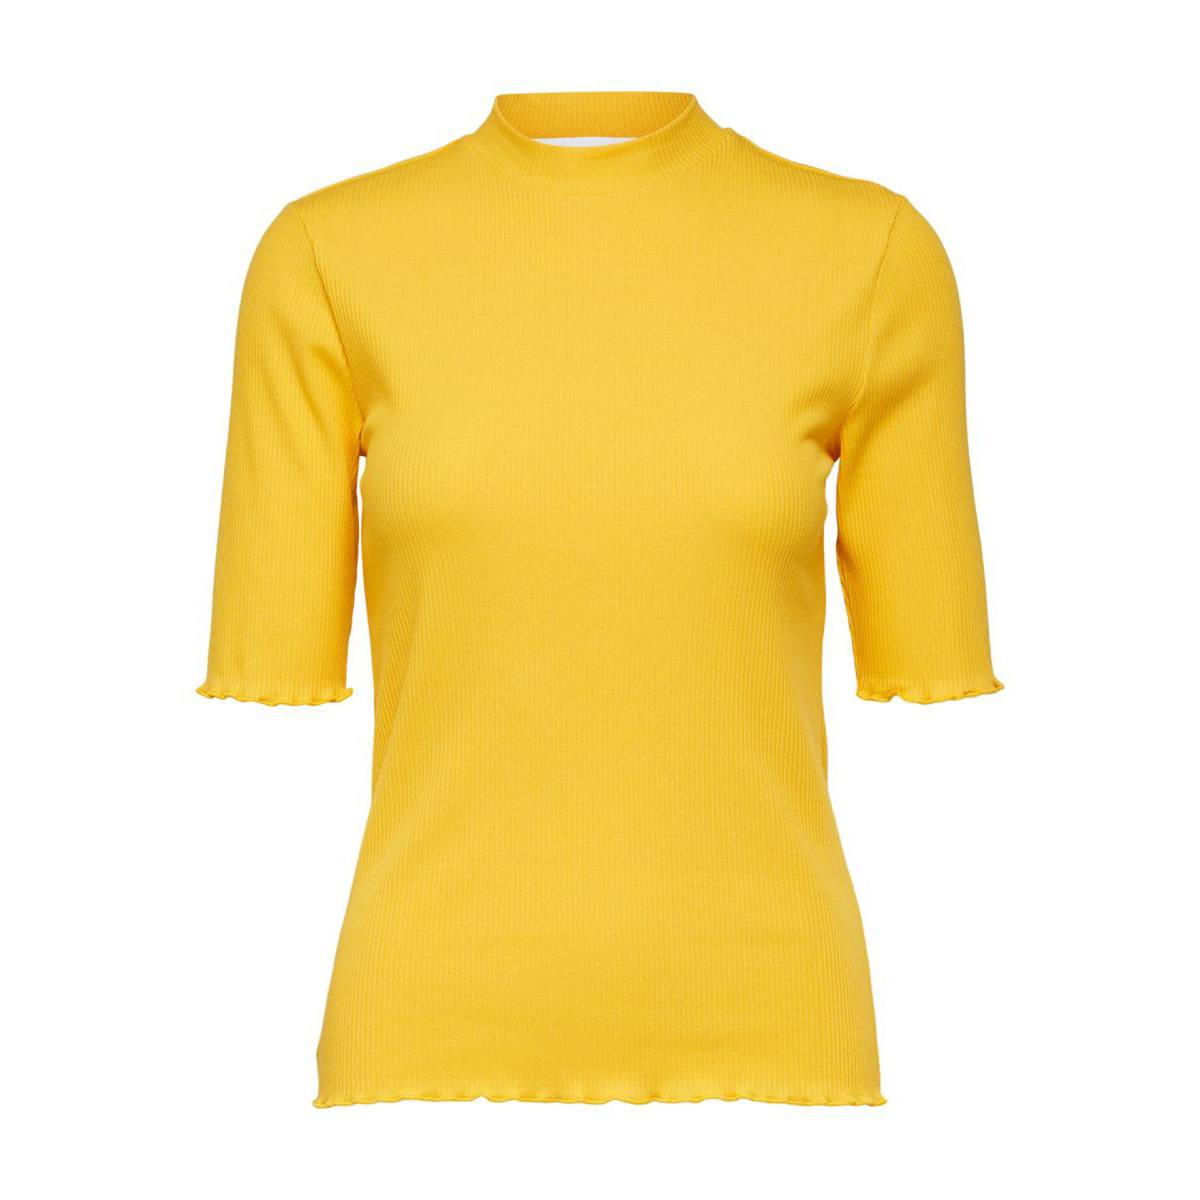 Fanna Citrus Crew Neck Tee by Selected Femme | Restoration Yard